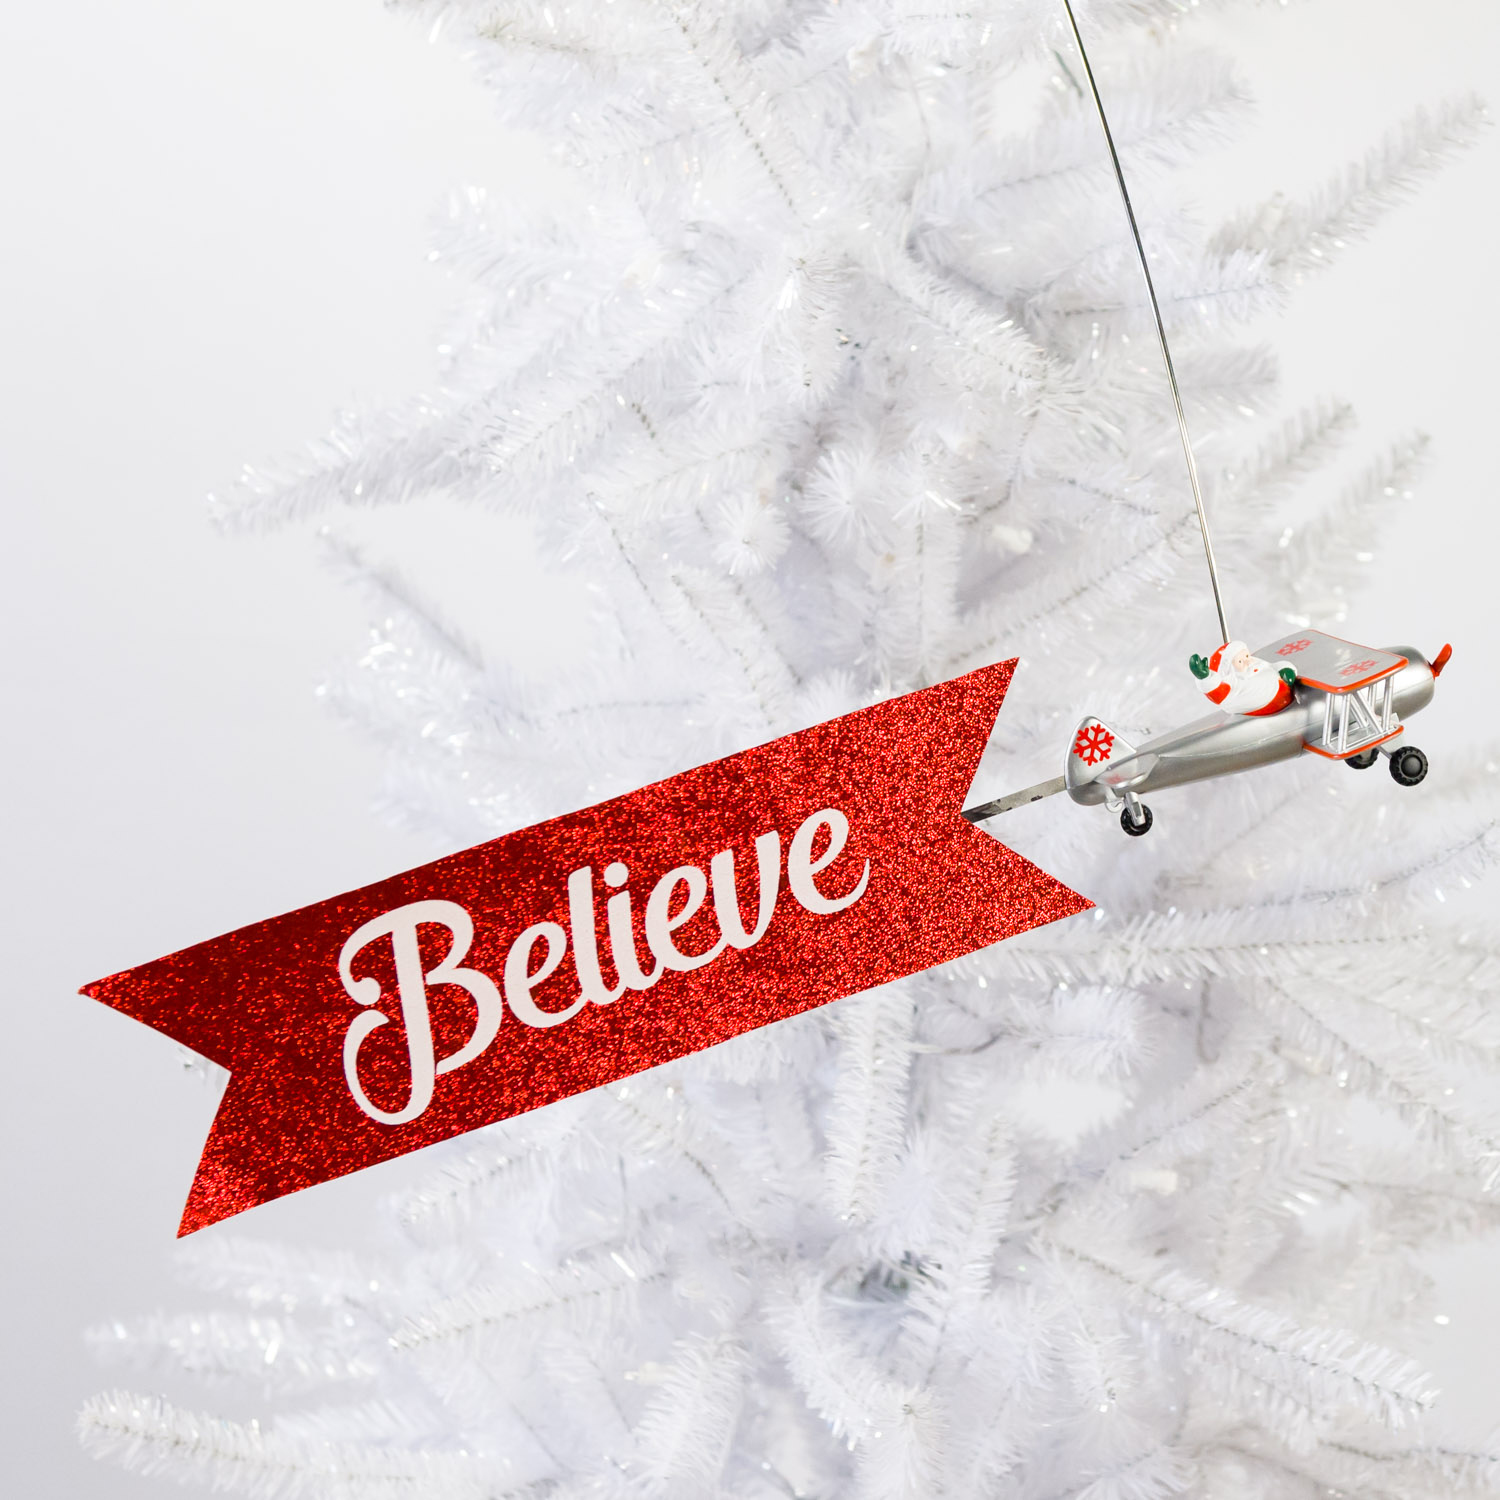 Biplane Animated Tree Topper - Cracker Barrel Old Country Store